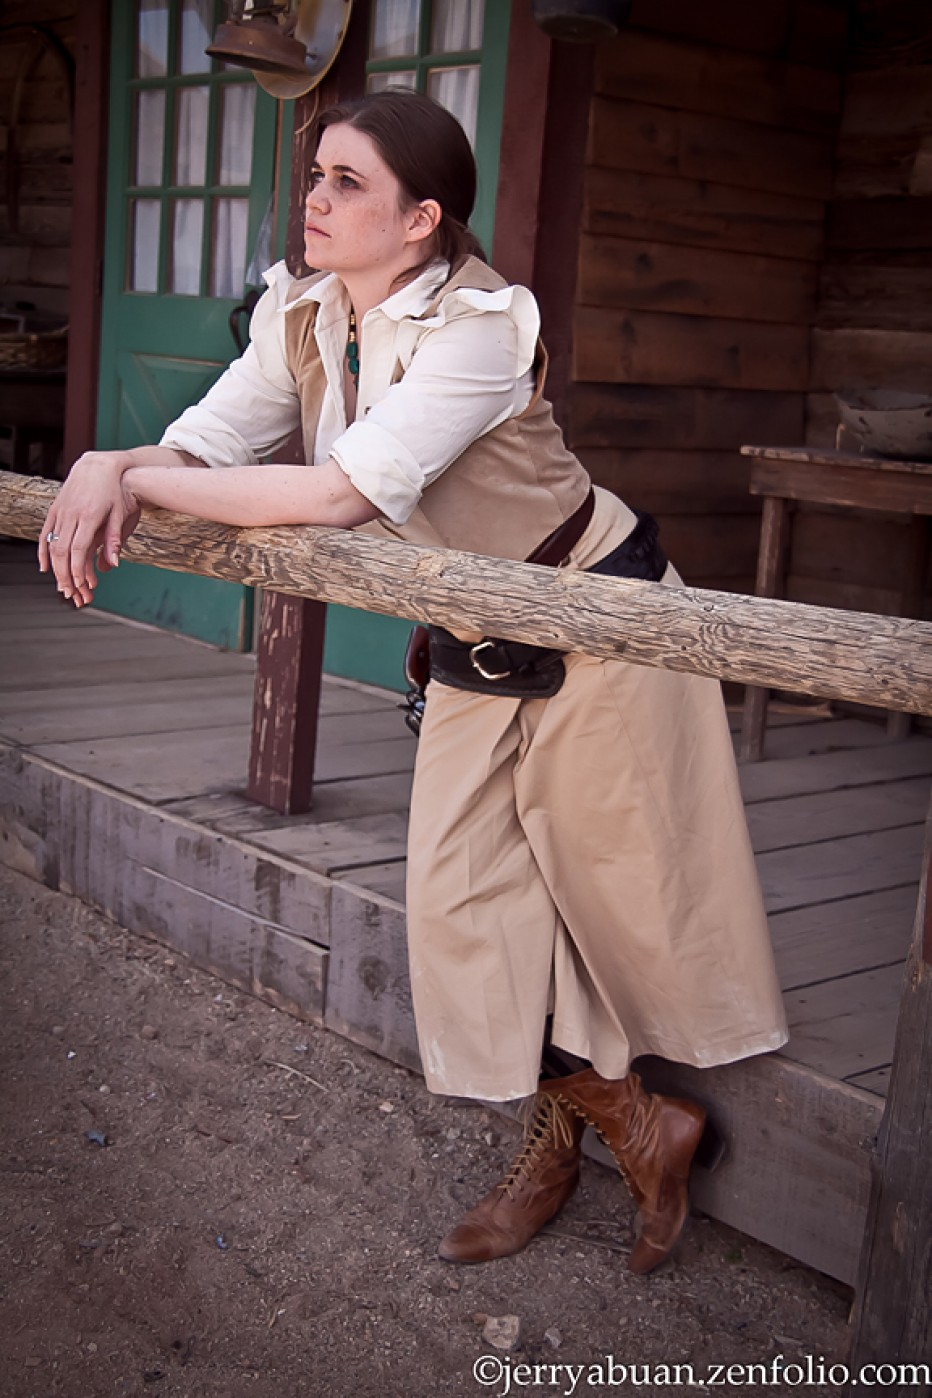 Red-Dead-Redemption-Bonnie-MacFarlane-Cosplay-Gamers-Heroes-2.jpg